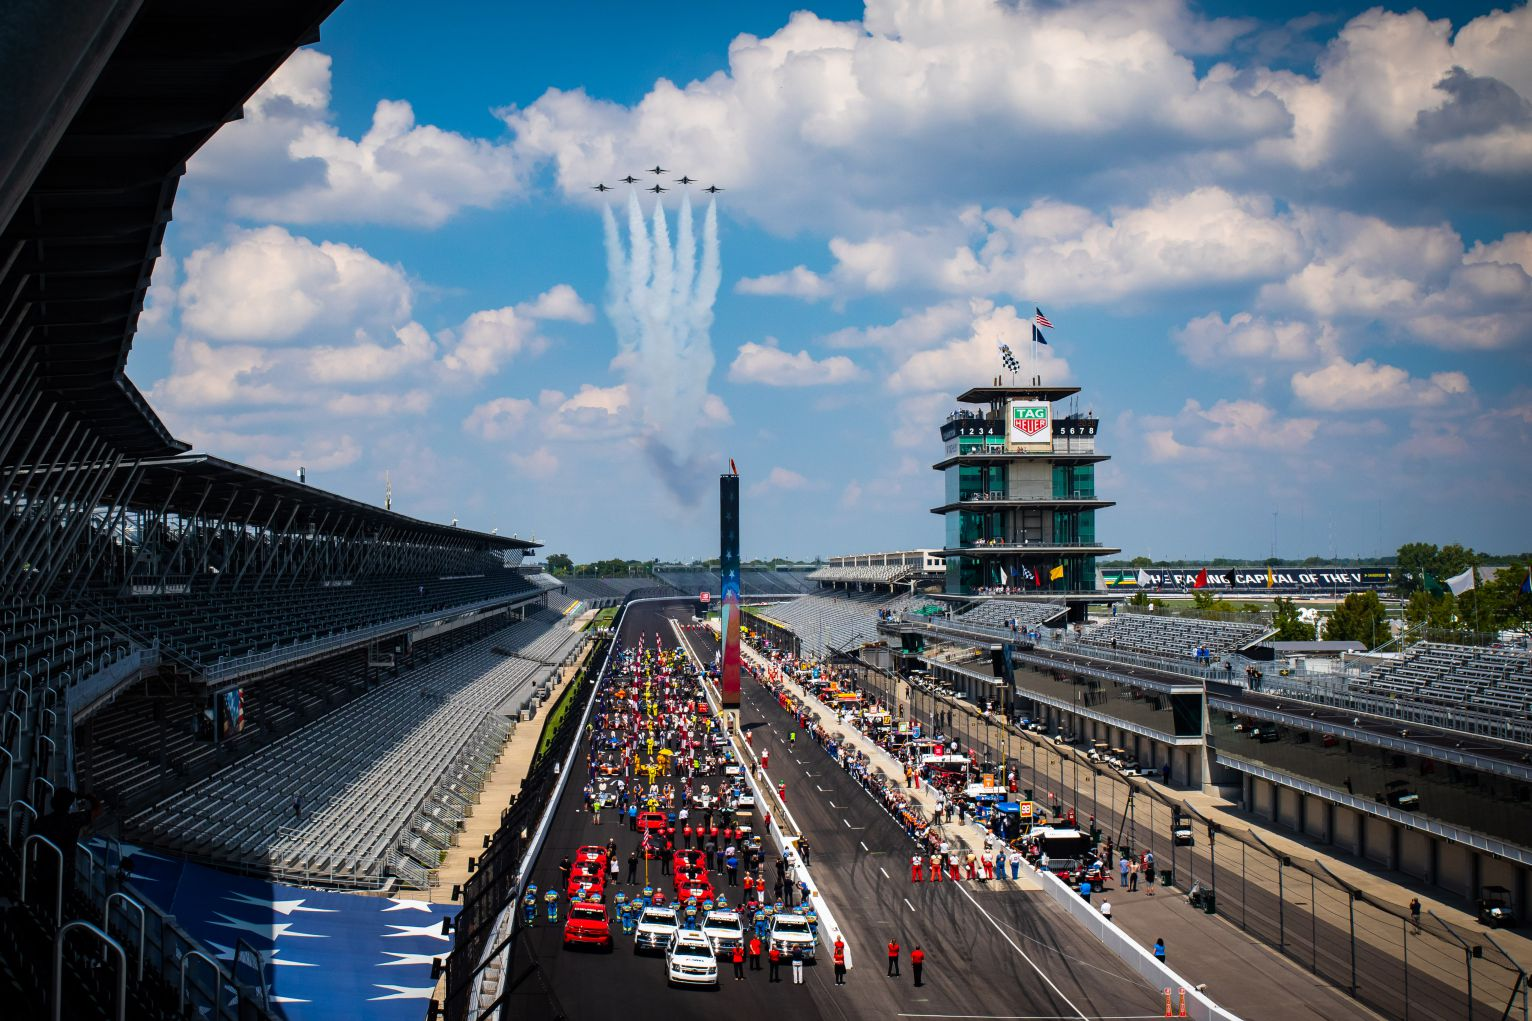 Flyover performed by the US Air Force Thunderbirds at the 104th Running of the Indianapolis 500. © [Kenneth Midgett/ Spacesuit Media]